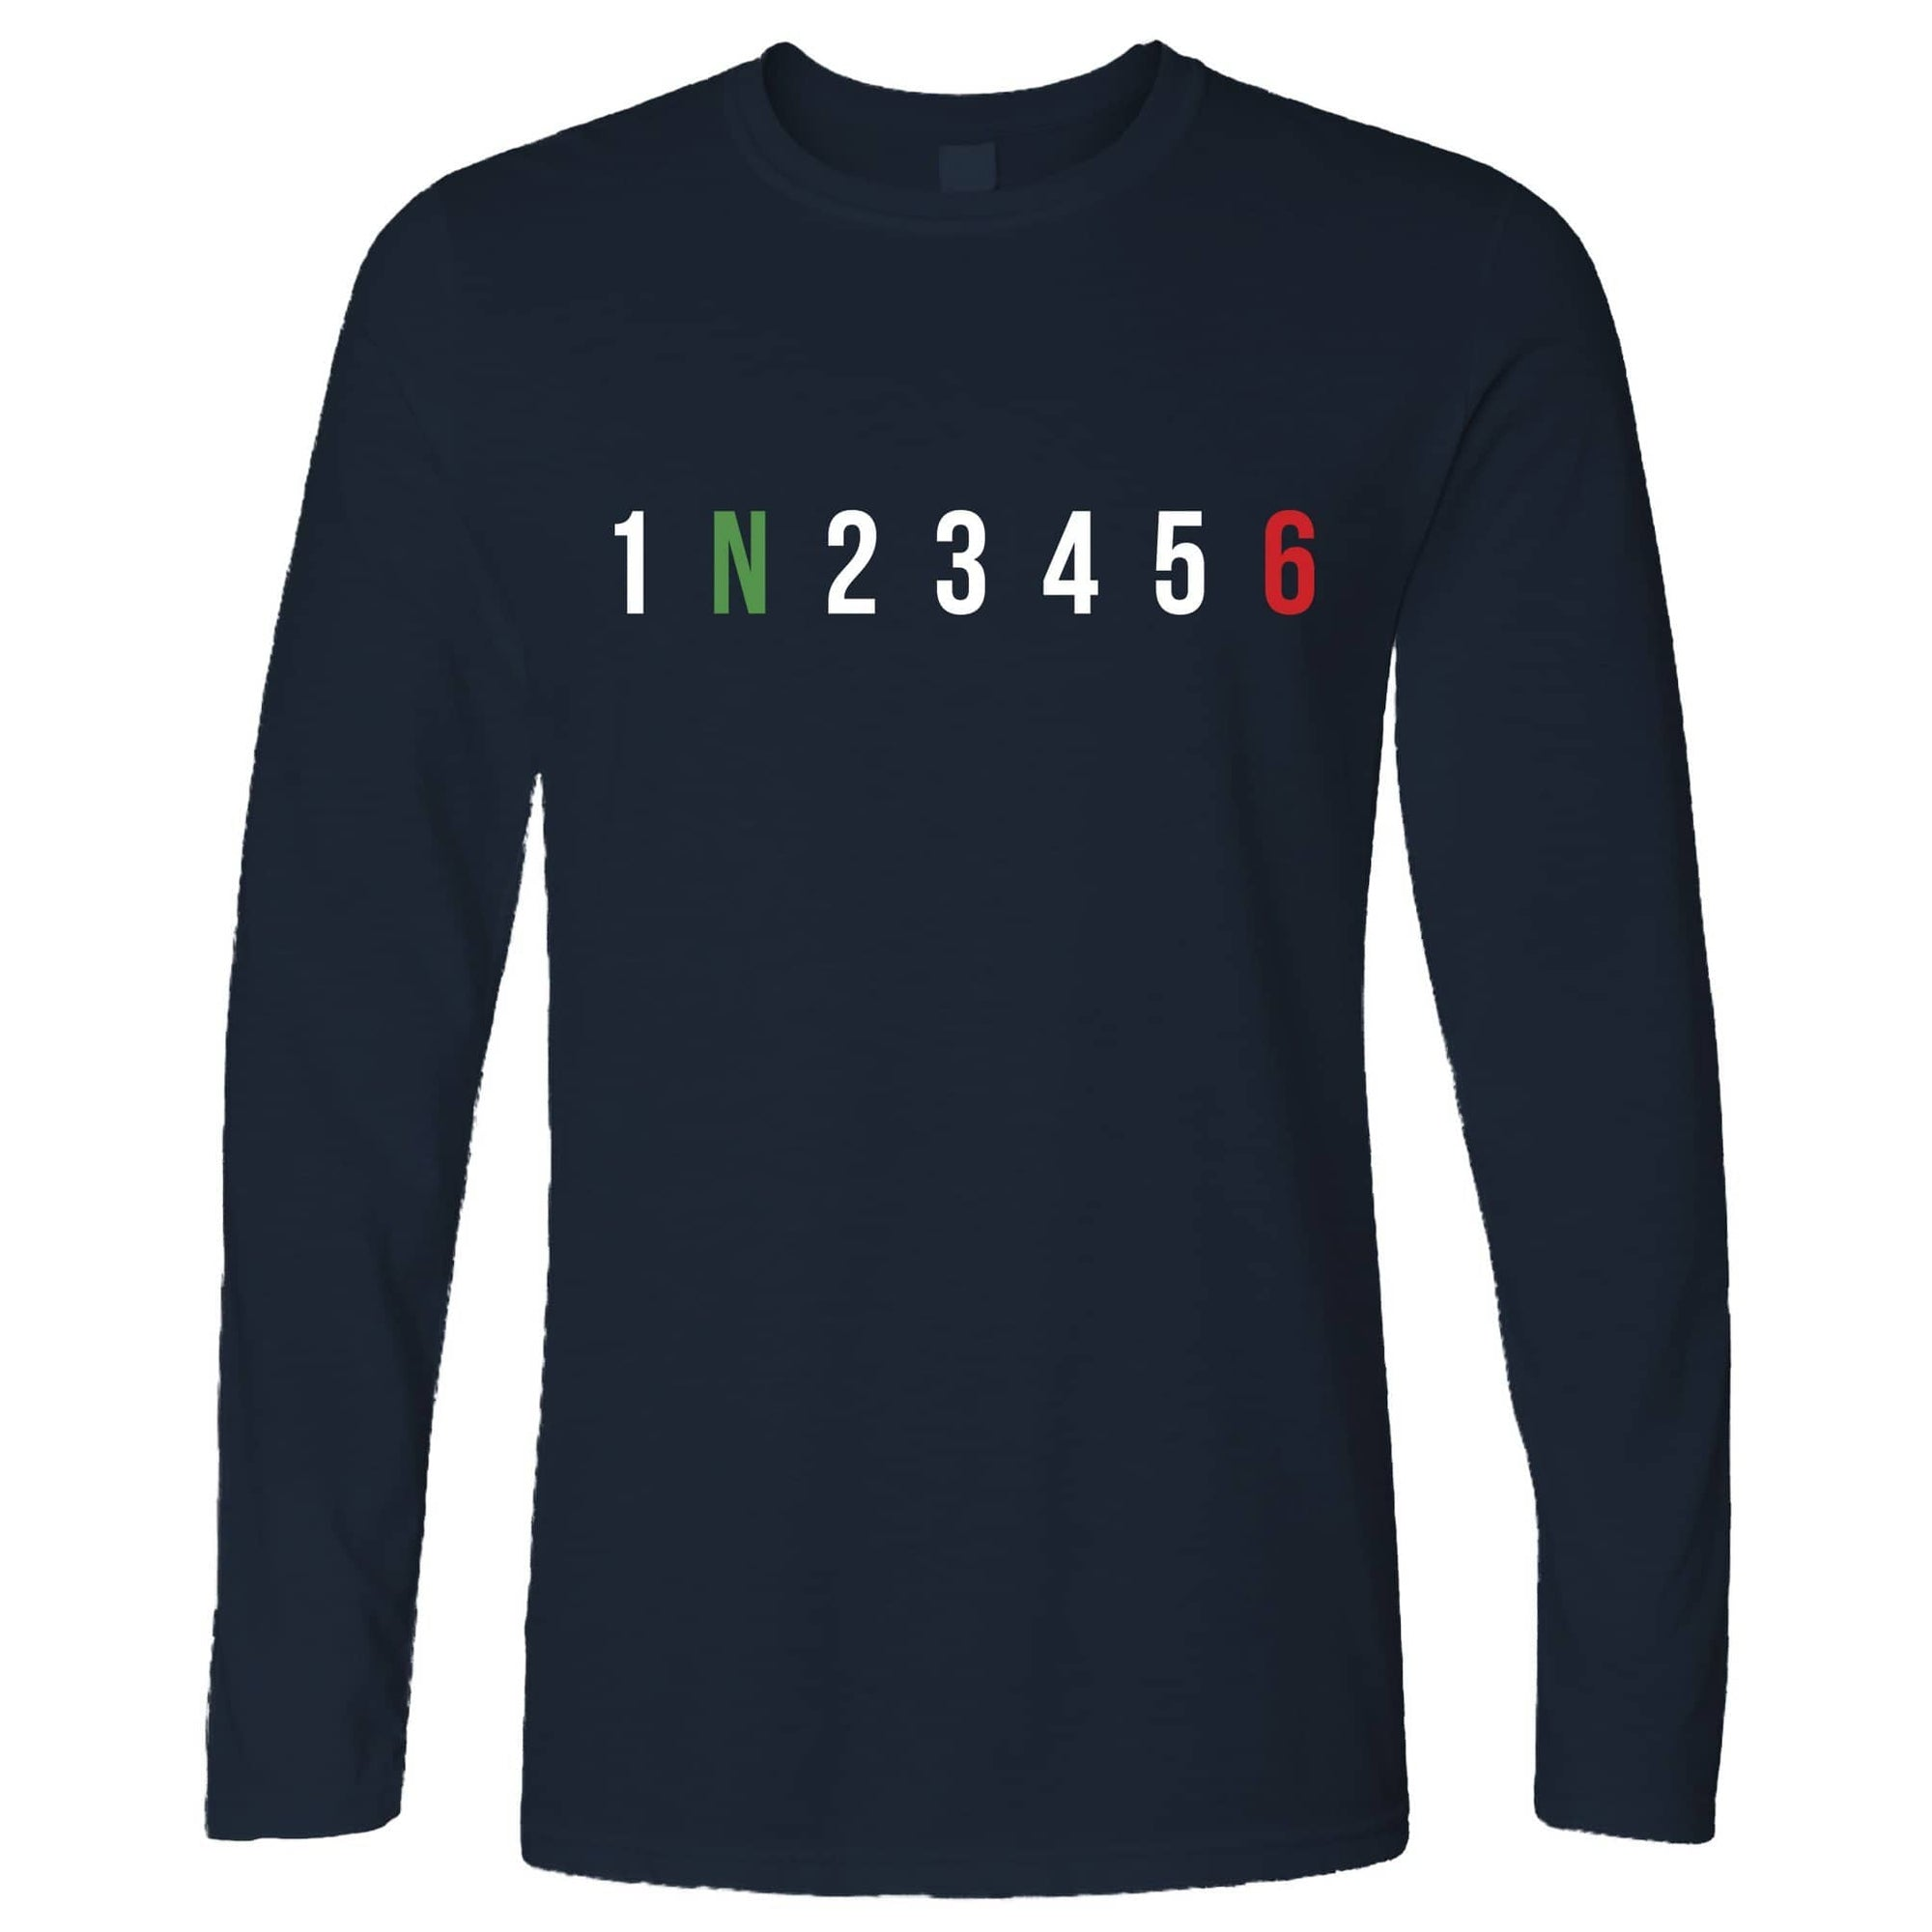 Biking Long Sleeve 1 N 2 3 4 5 6 Motorbike Gears T-Shirt